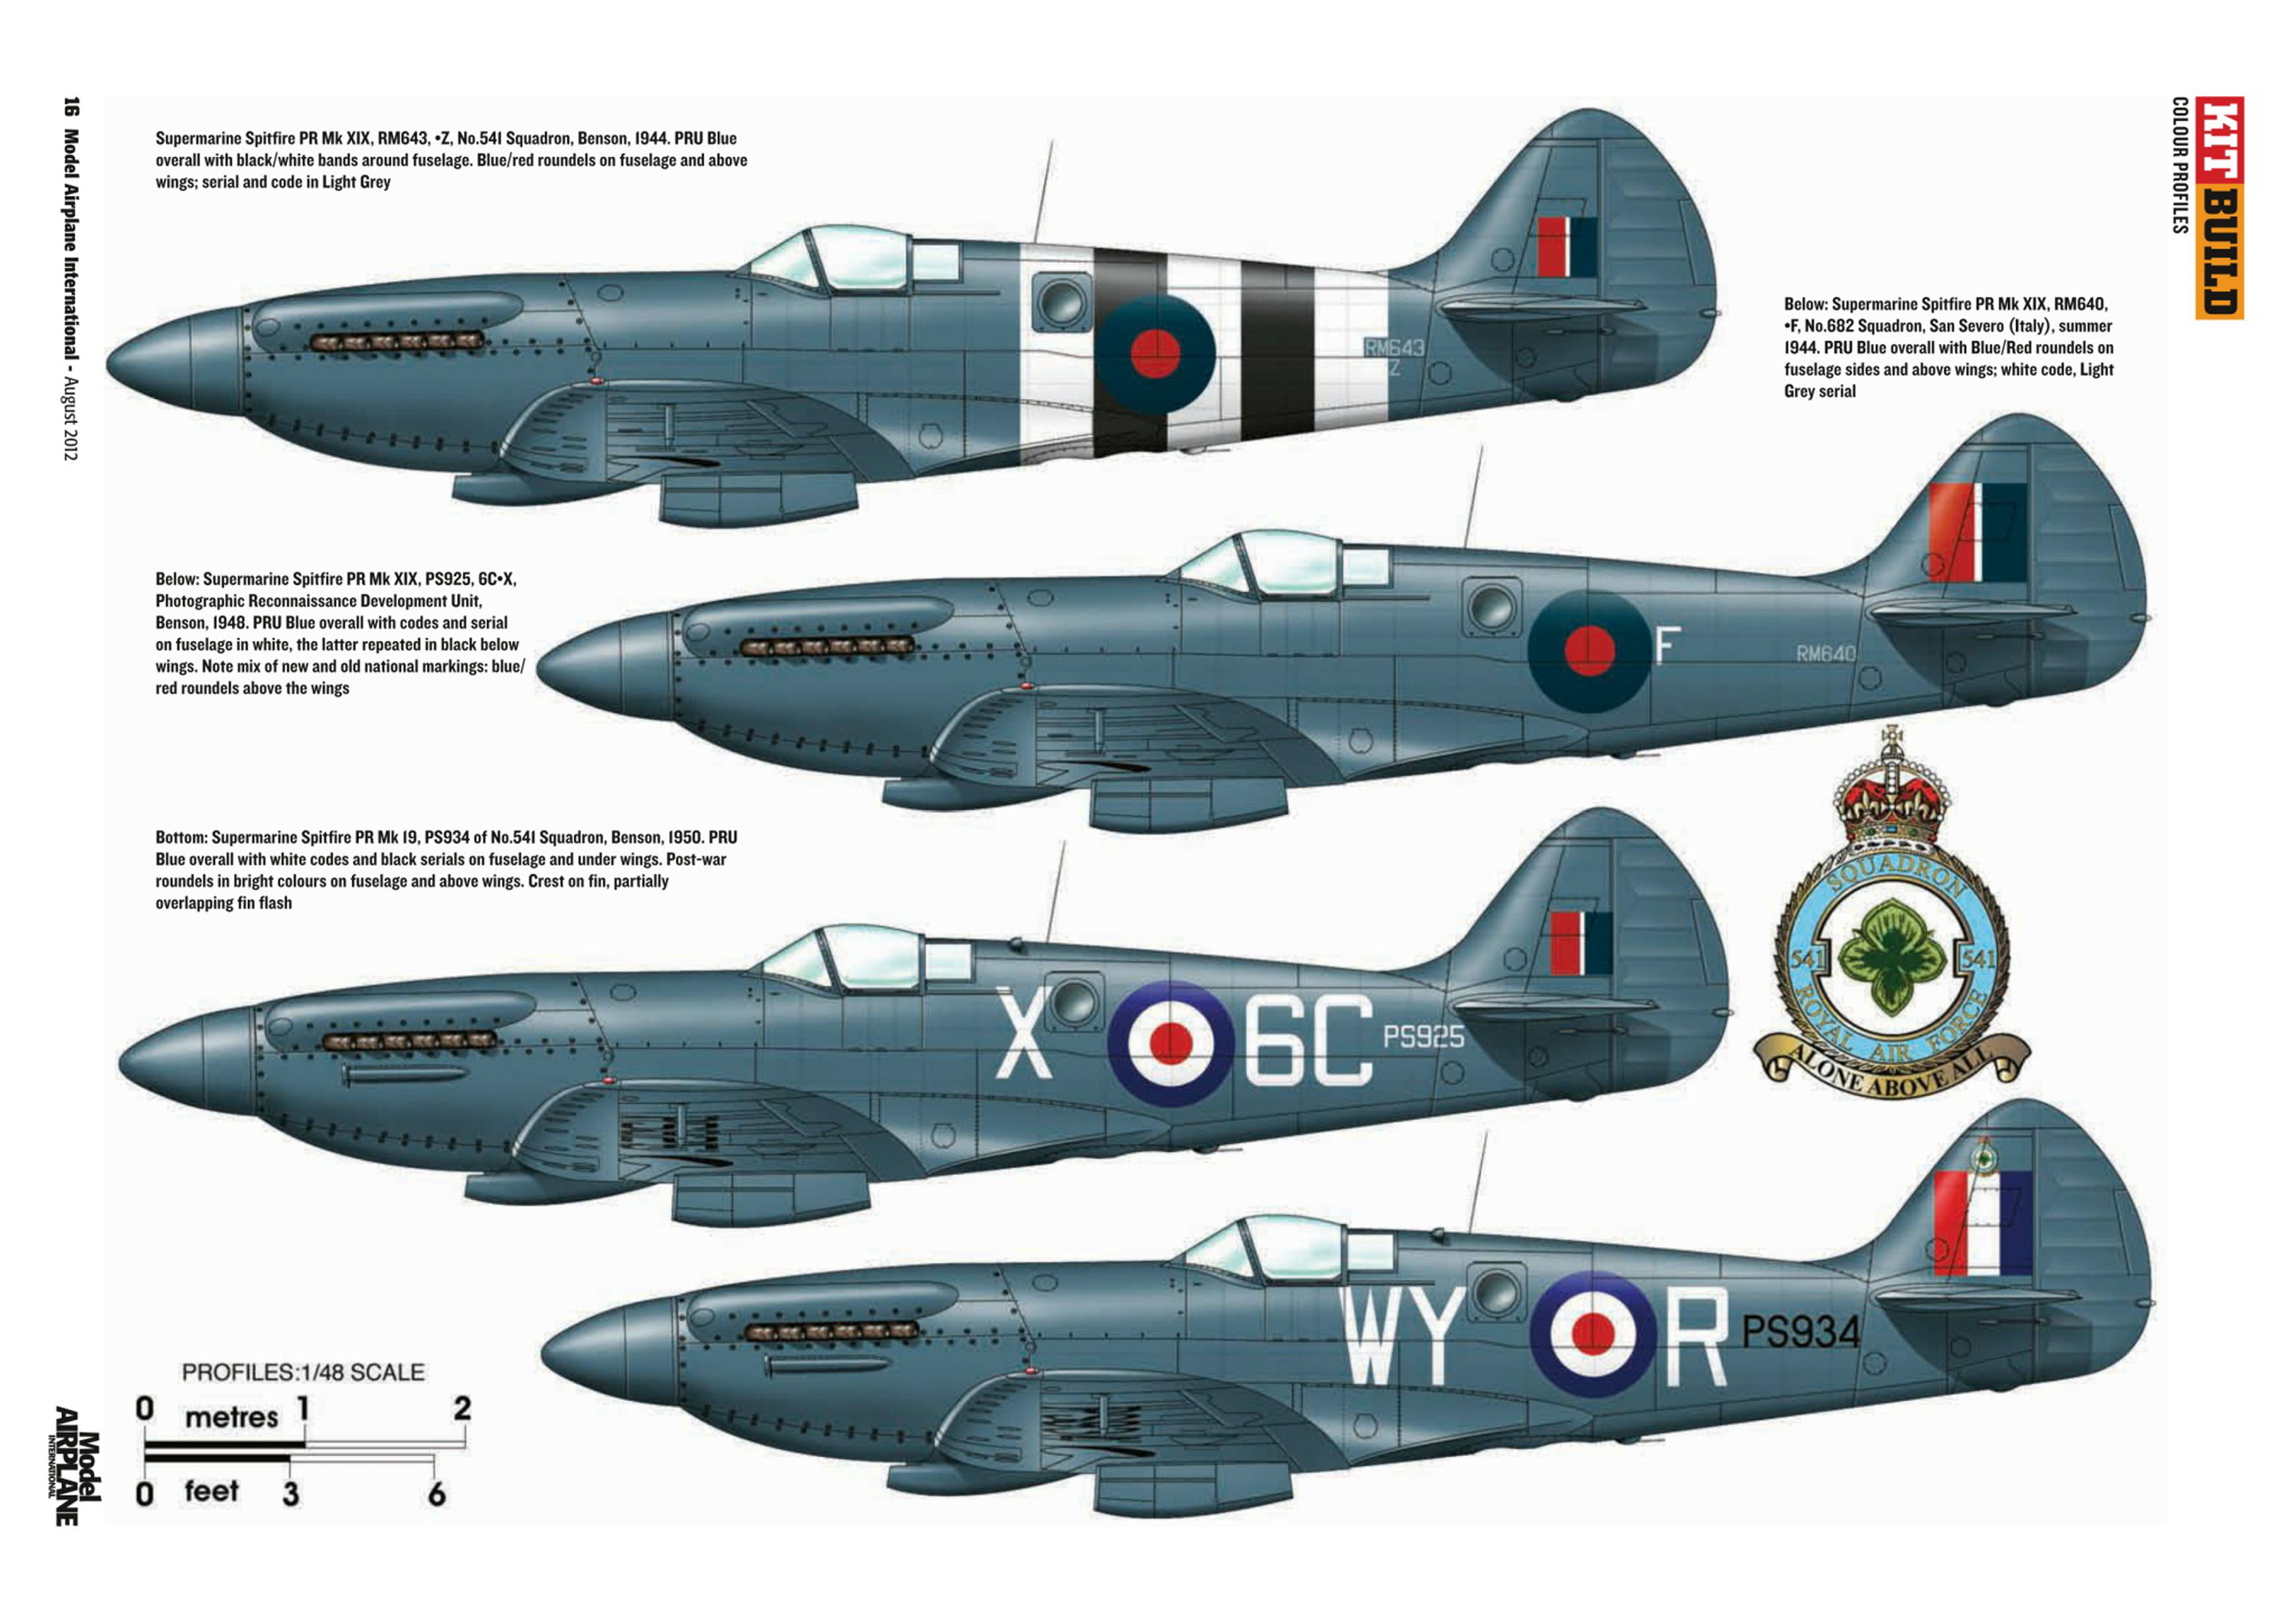 Supermarine Spitfire profiles by Model Airplane Int 085 2012 08 Page 16